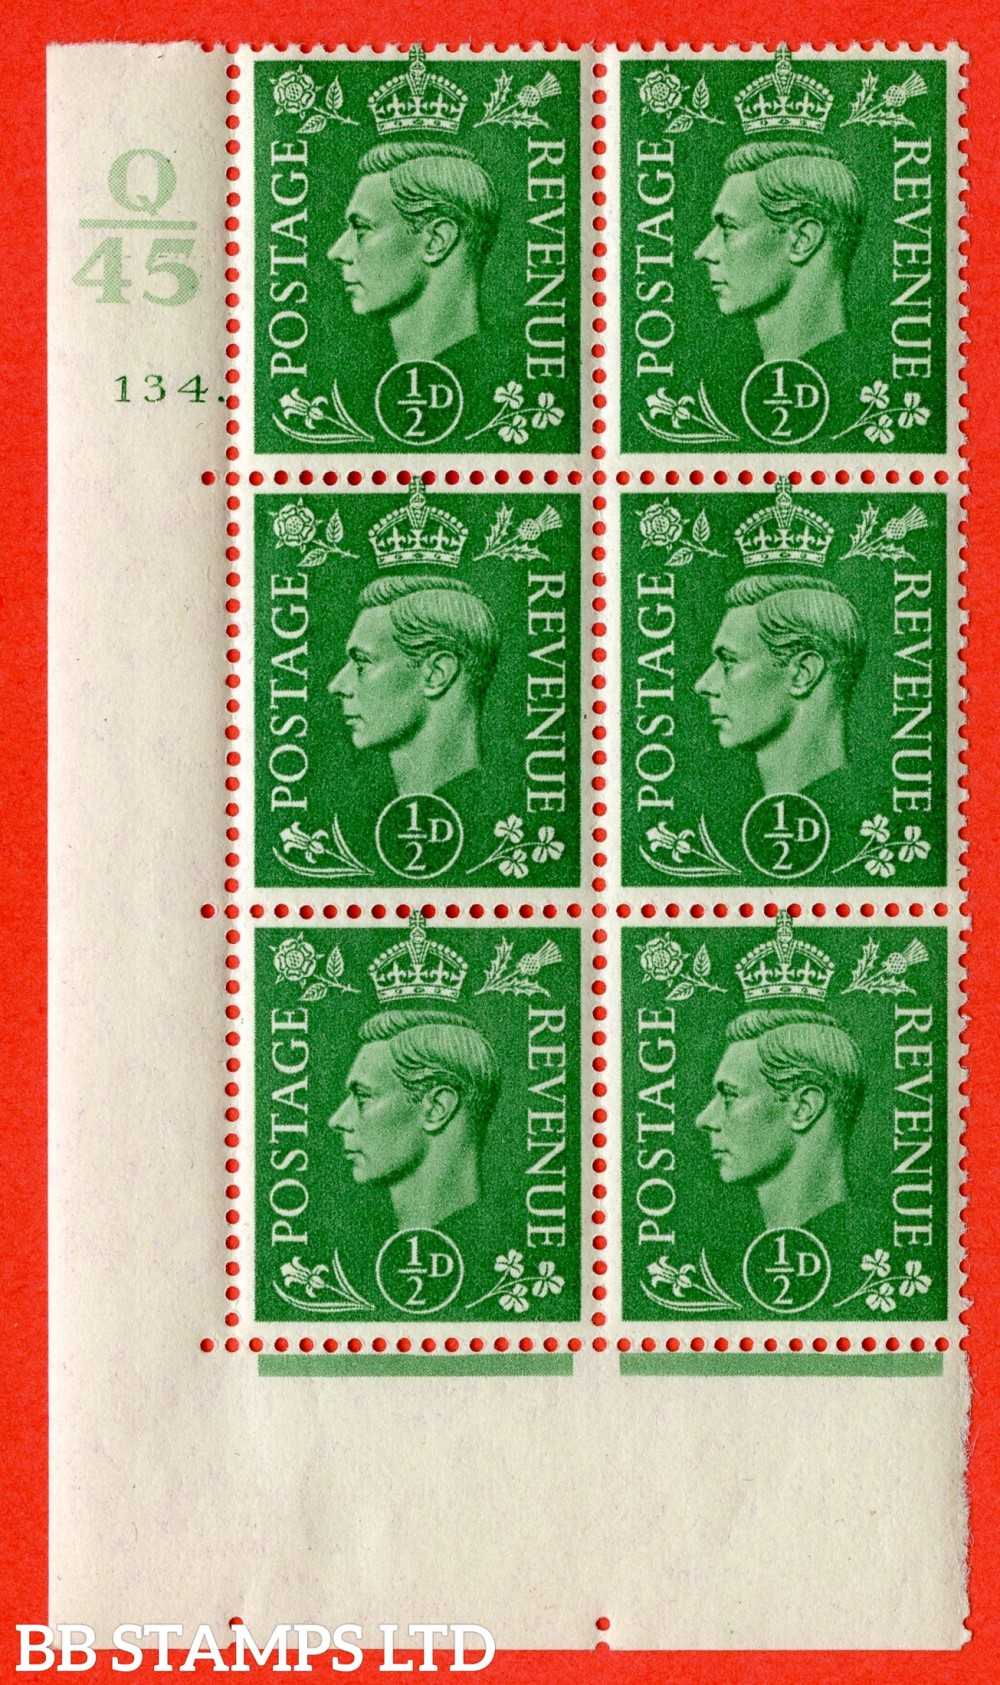 "SG. 485. Q2. ½d Pale Green. A very fine lightly mounted mint "" Control Q45 cylinder 134 dot "" block of 6 with perf type 5 E/I with marginal rule."